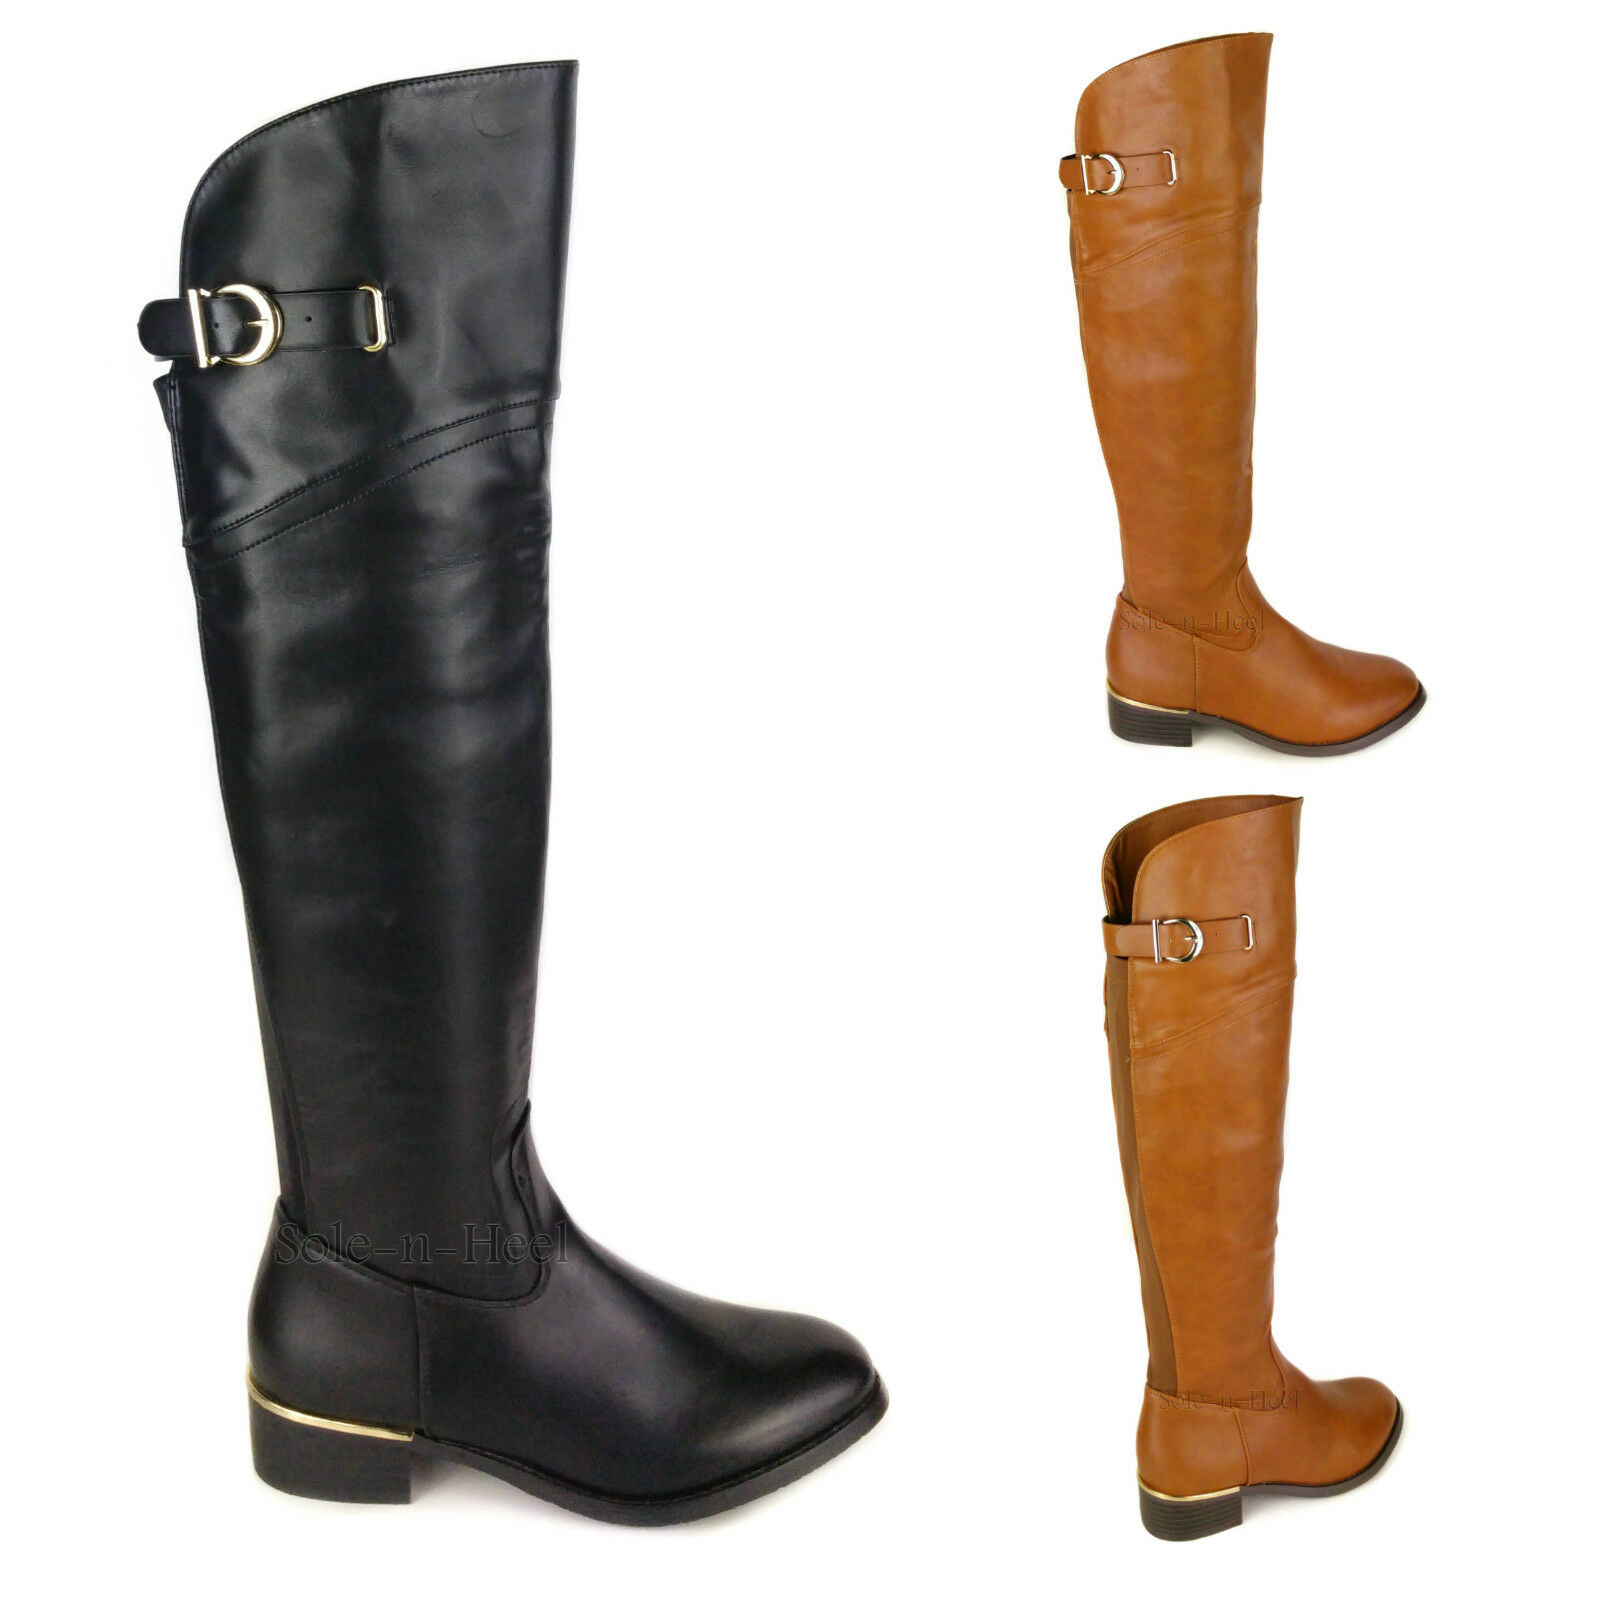 WOMENS LADIES FLAT LOW HEEL OVER THE KNEE THIGH HIGH WIDE CALF RIDING BOOTS SIZE